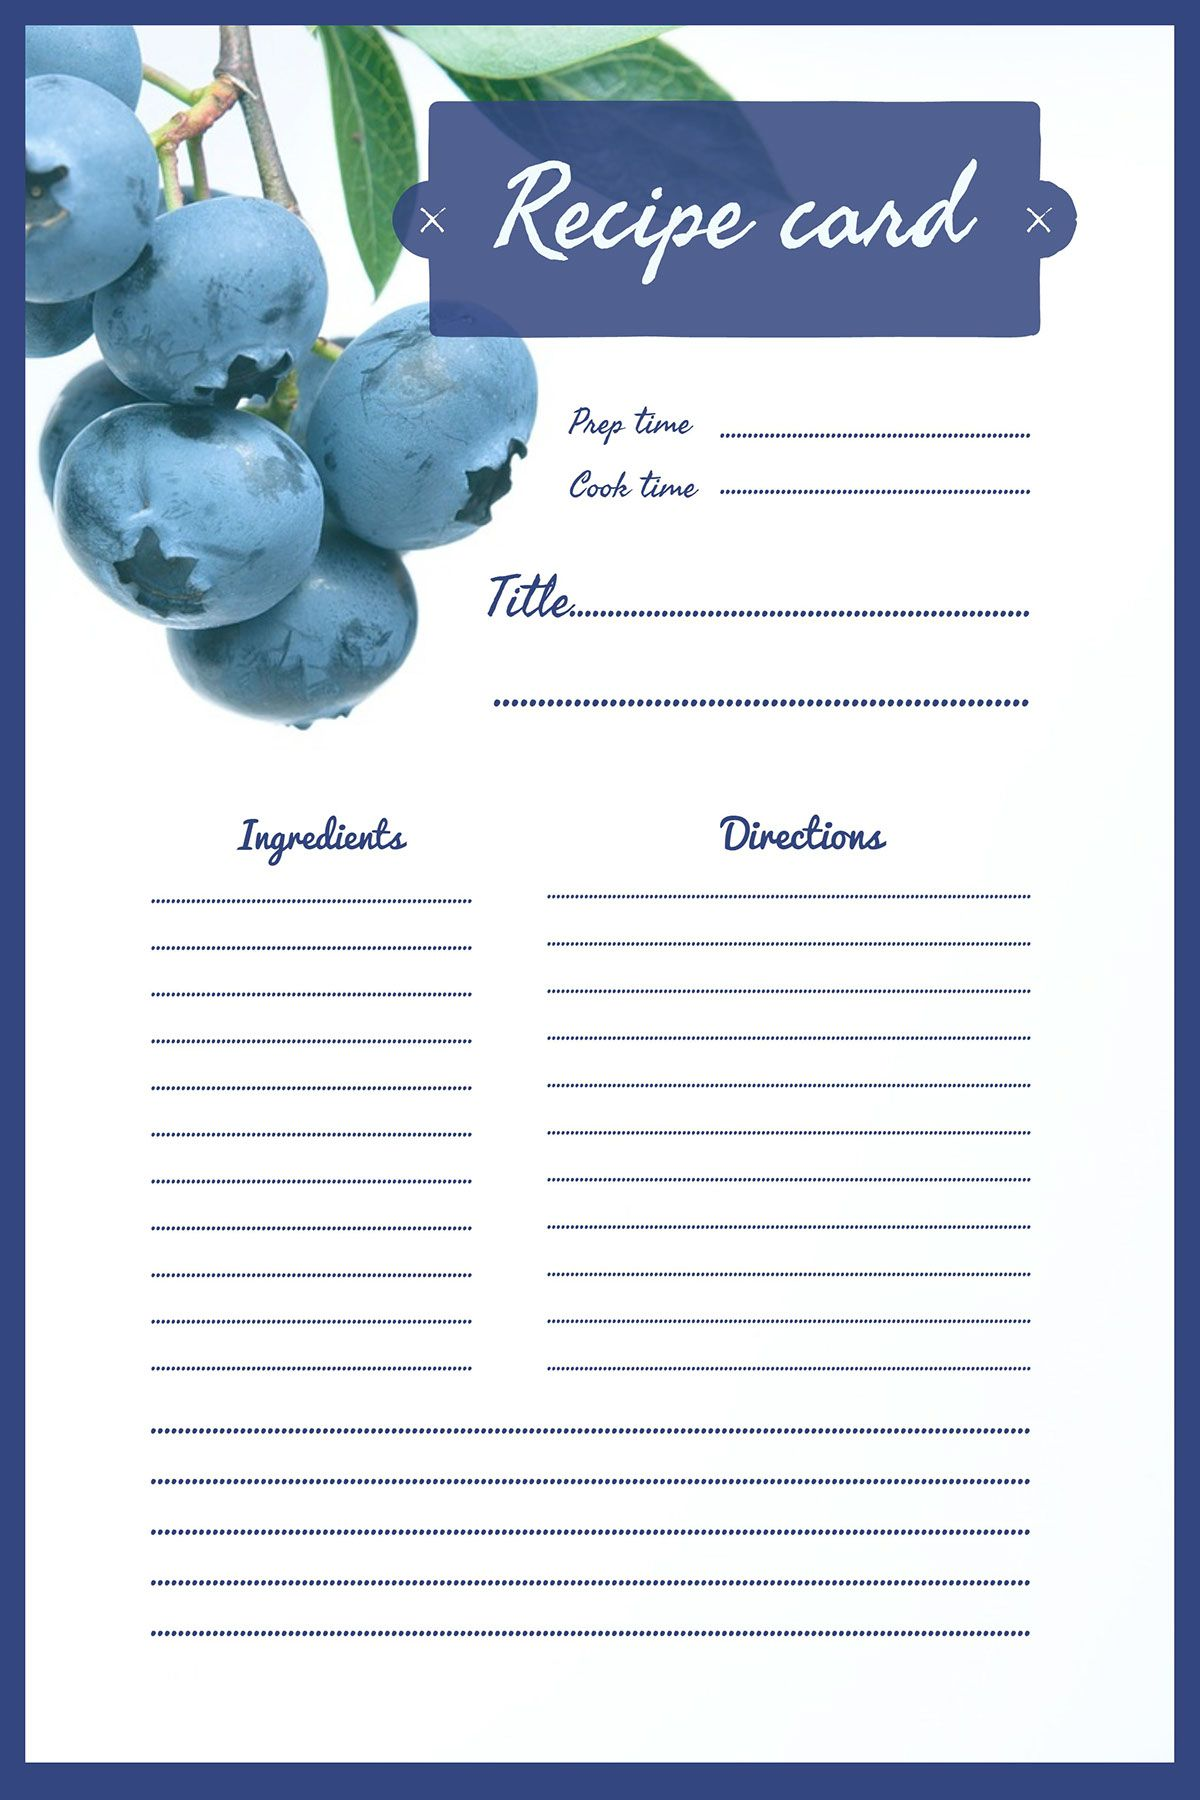 Free Online Recipe Card Maker Adobe Spark Recipe Cards Template Printable Recipe Cards Recipe Cards